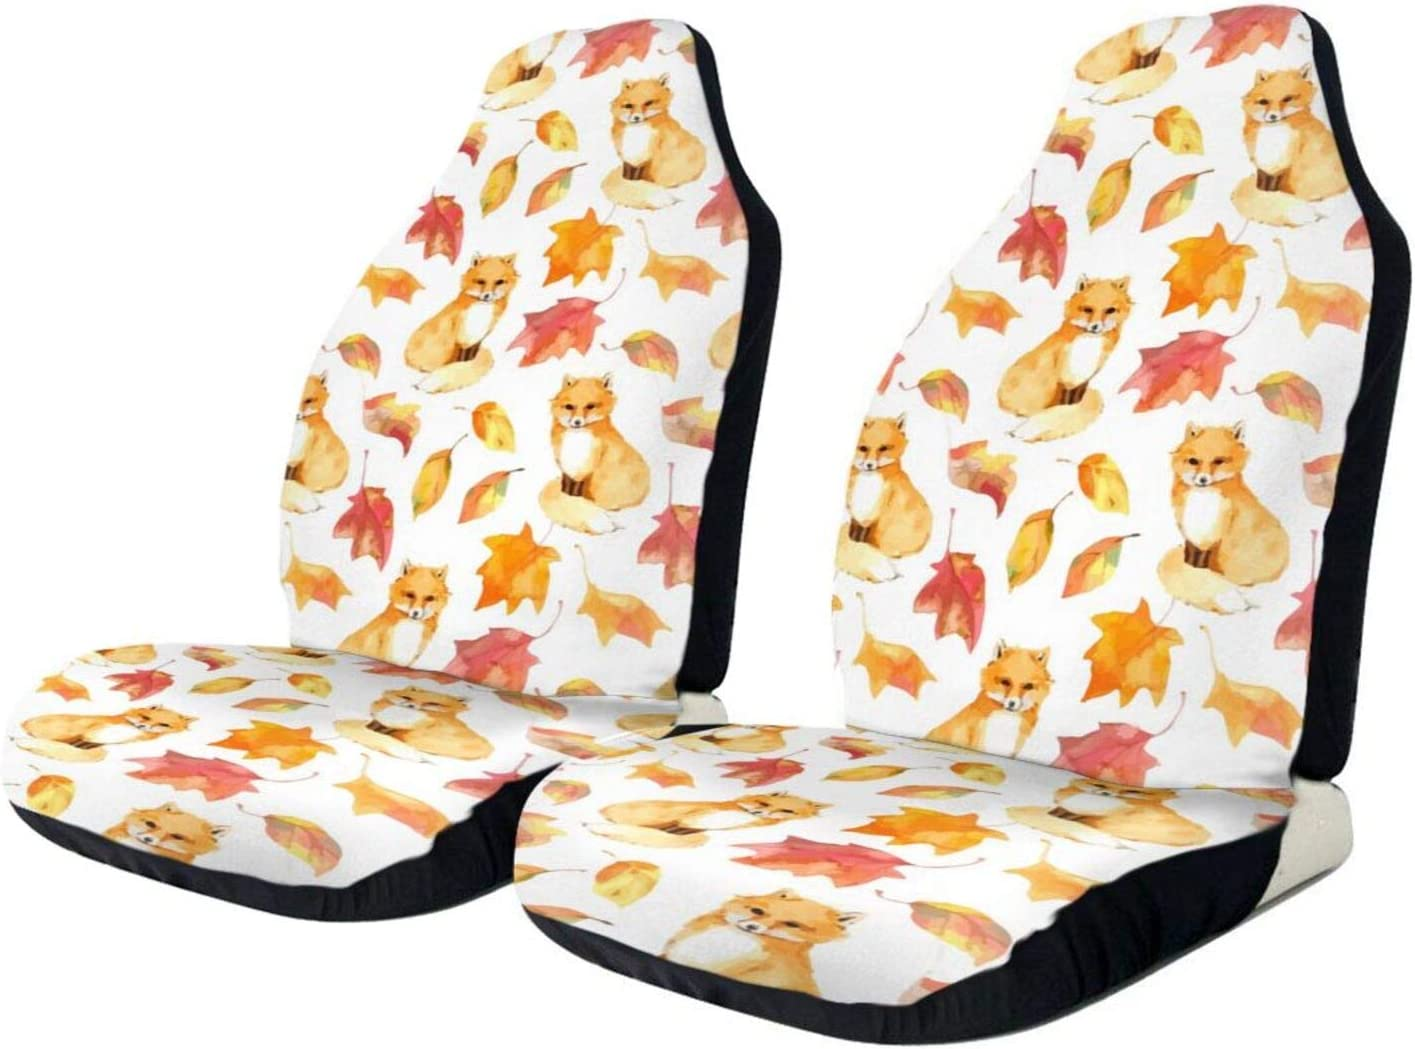 MSACRH Spring new work one after another Car Seat Covers Foxes Vehicle Red Leaves S 5 ☆ very popular Protector